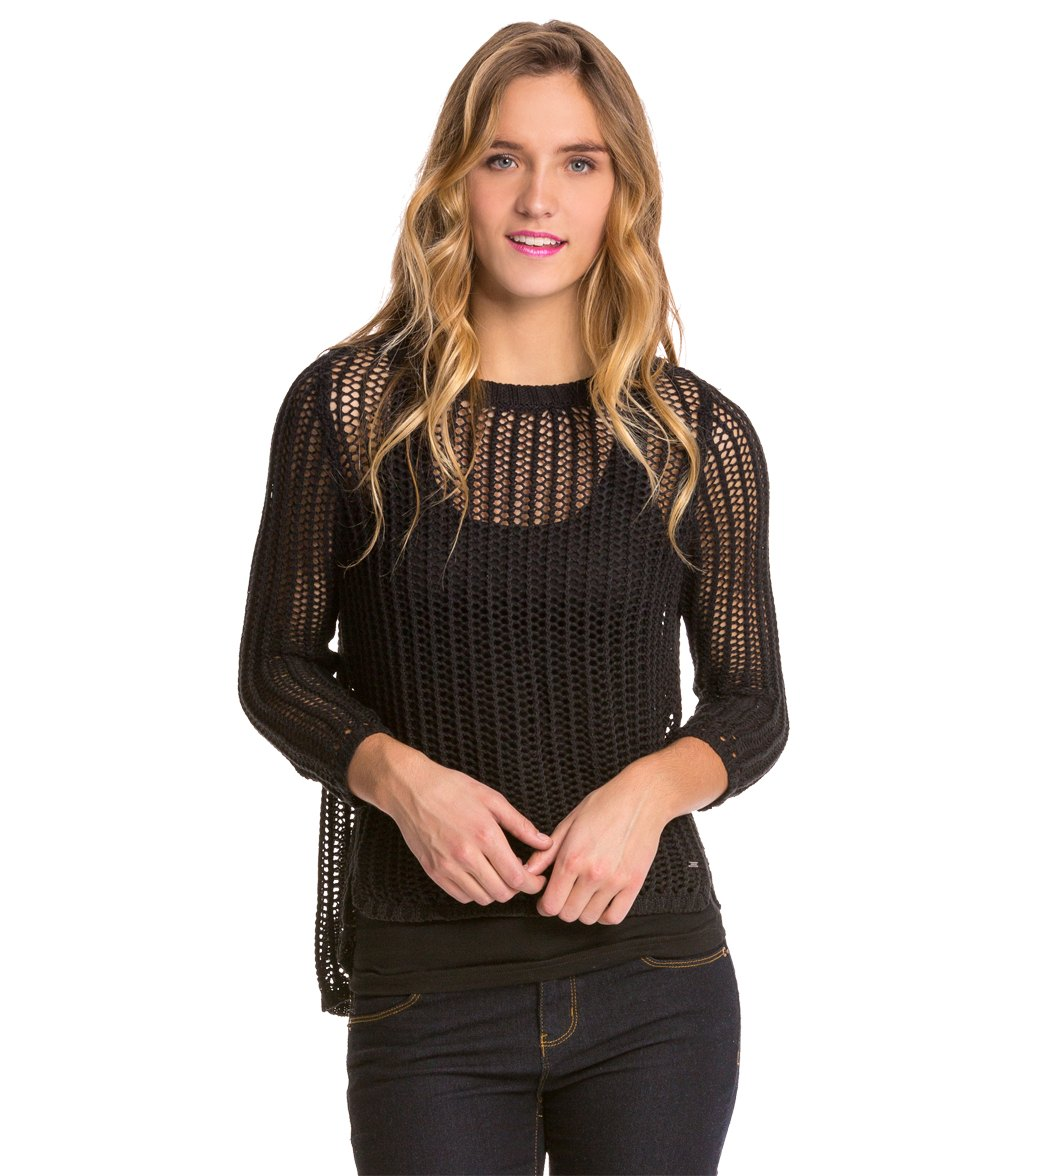 aaa4a902247 Volcom All Meshed Up Sweater at SwimOutlet.com - Free Shipping